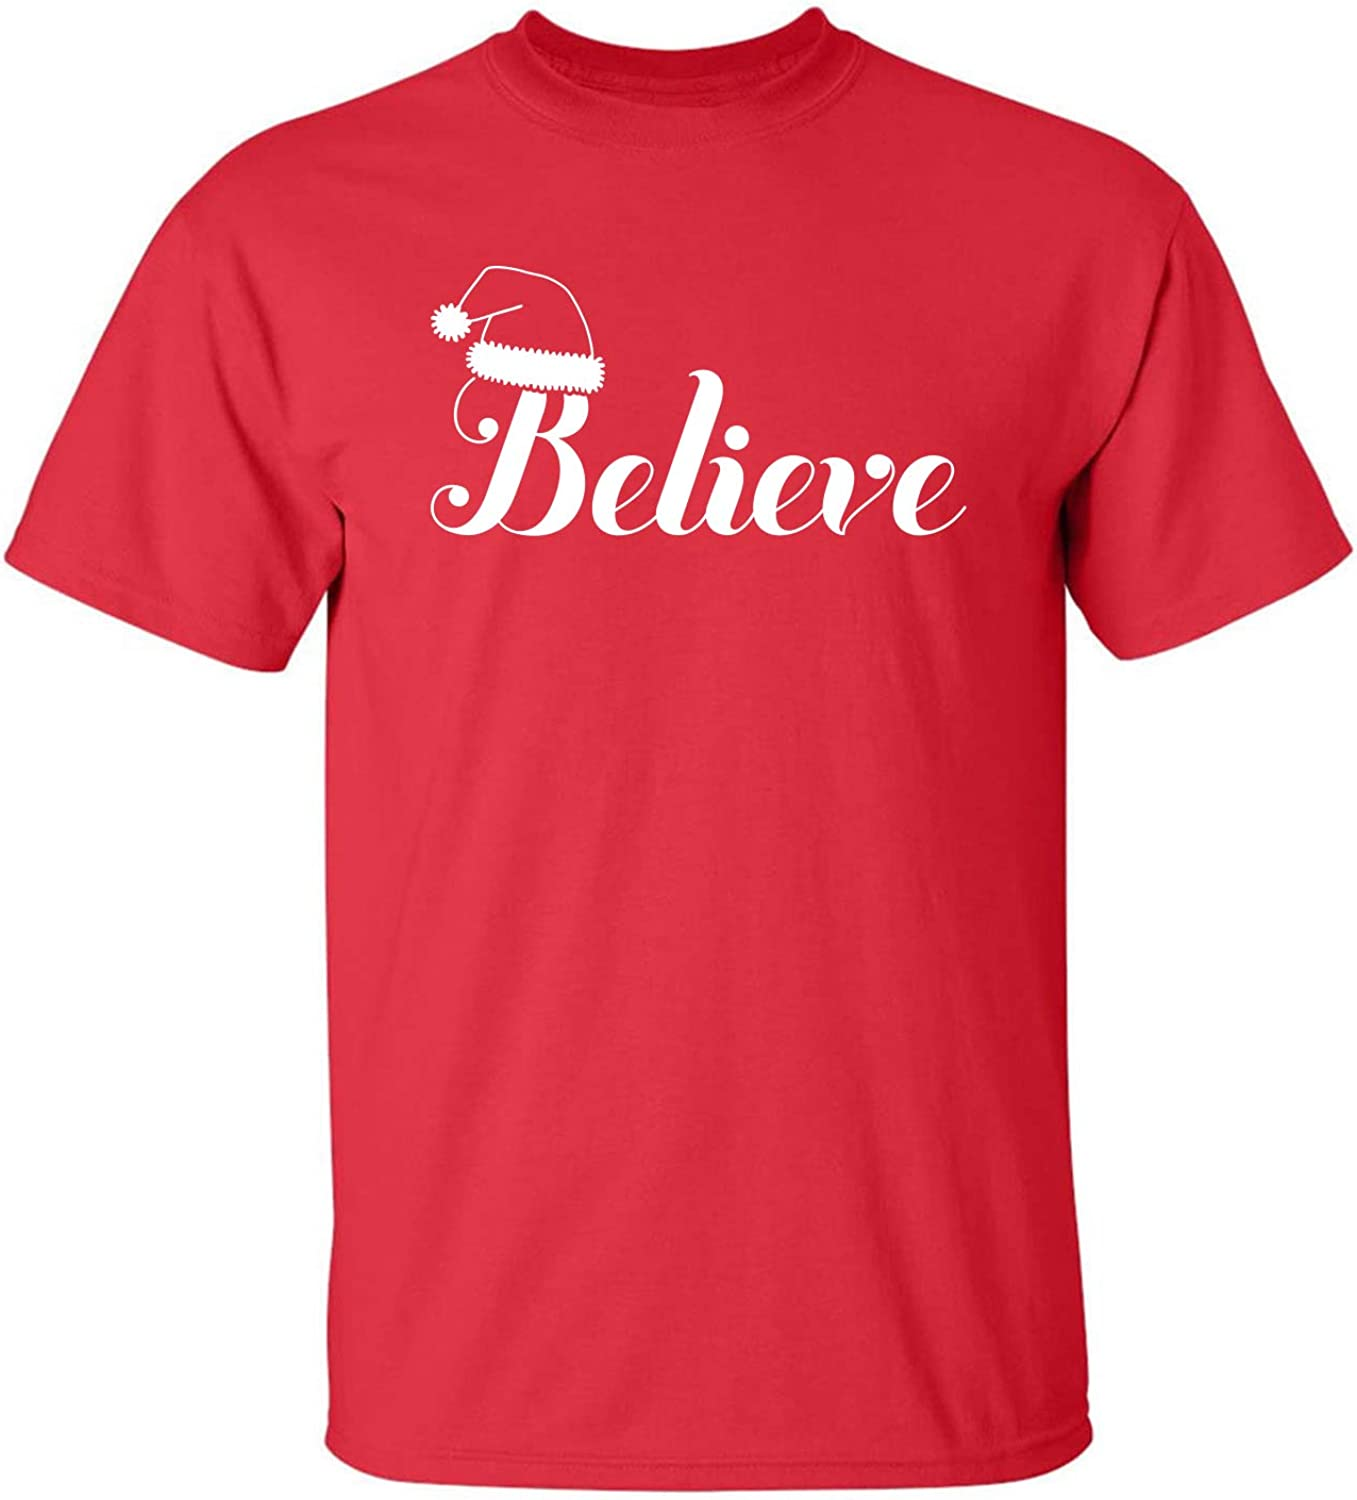 Believe Adult T-Shirt in Red - XXXX-Large